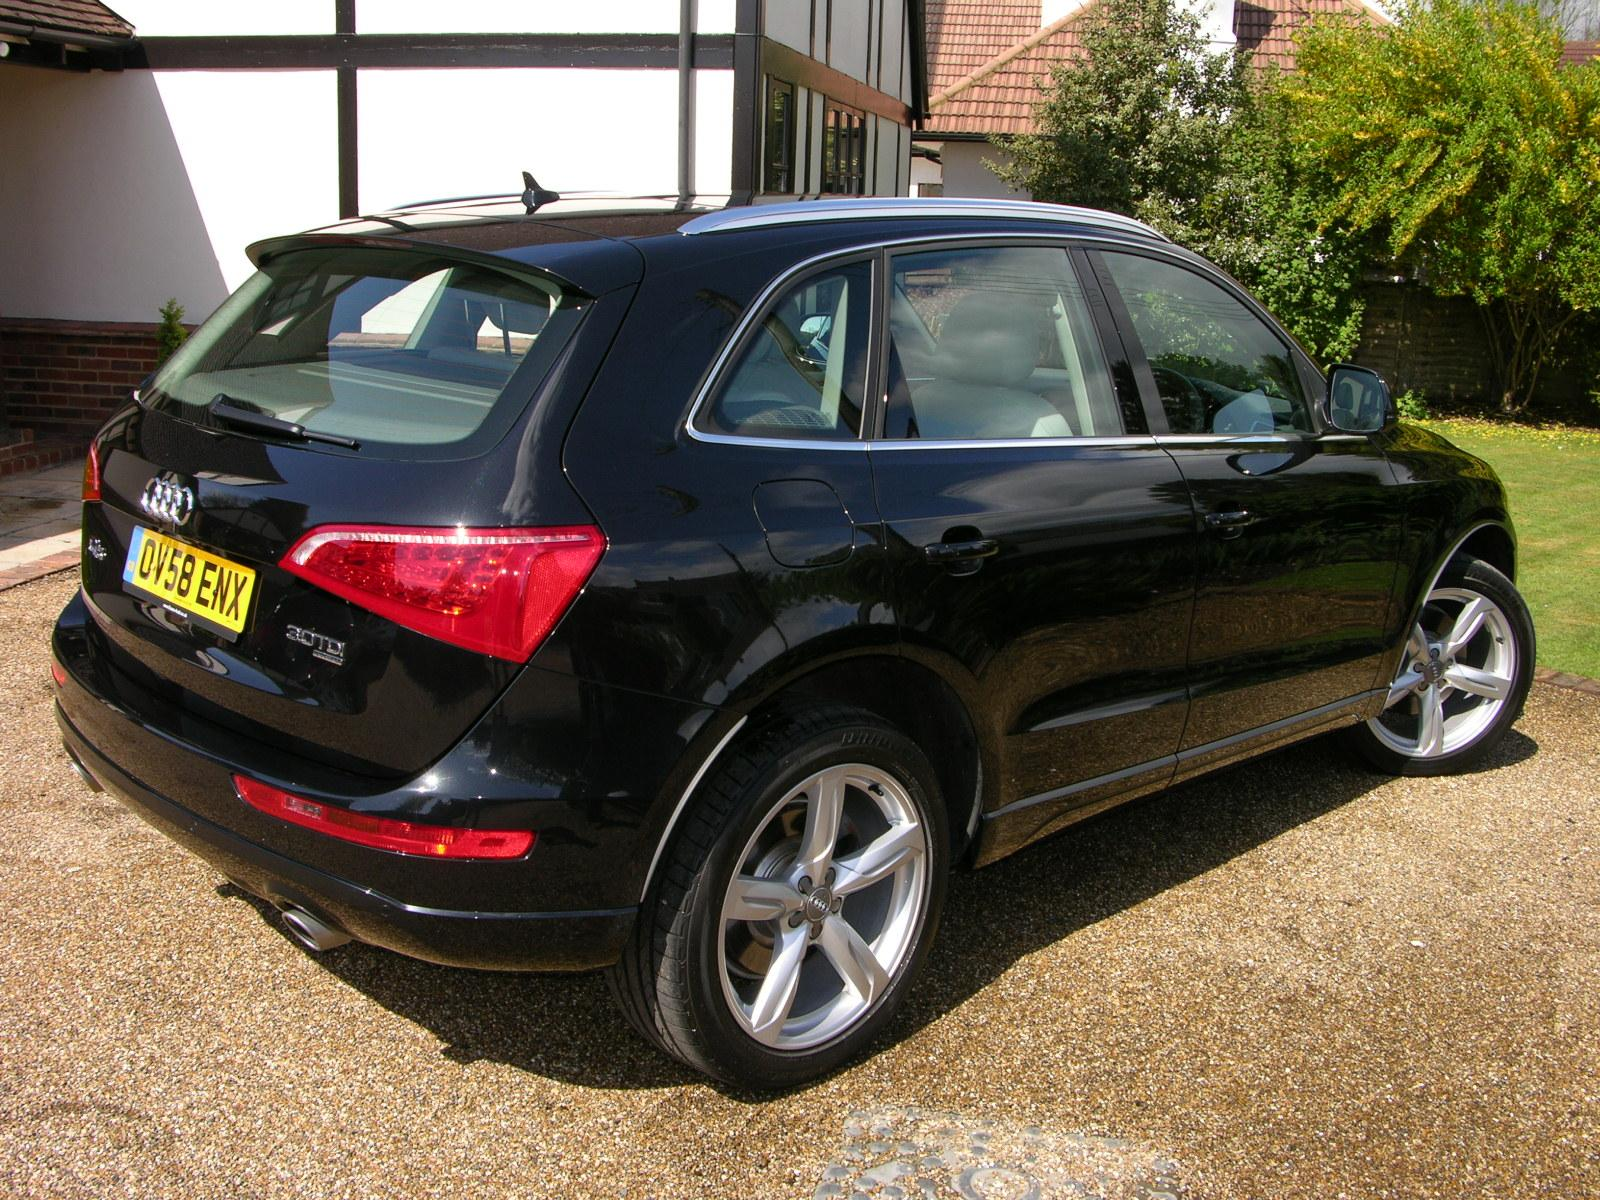 file 2009 audi q5 se tdi quattro flickr the car spy 1 jpg wikimedia commons. Black Bedroom Furniture Sets. Home Design Ideas